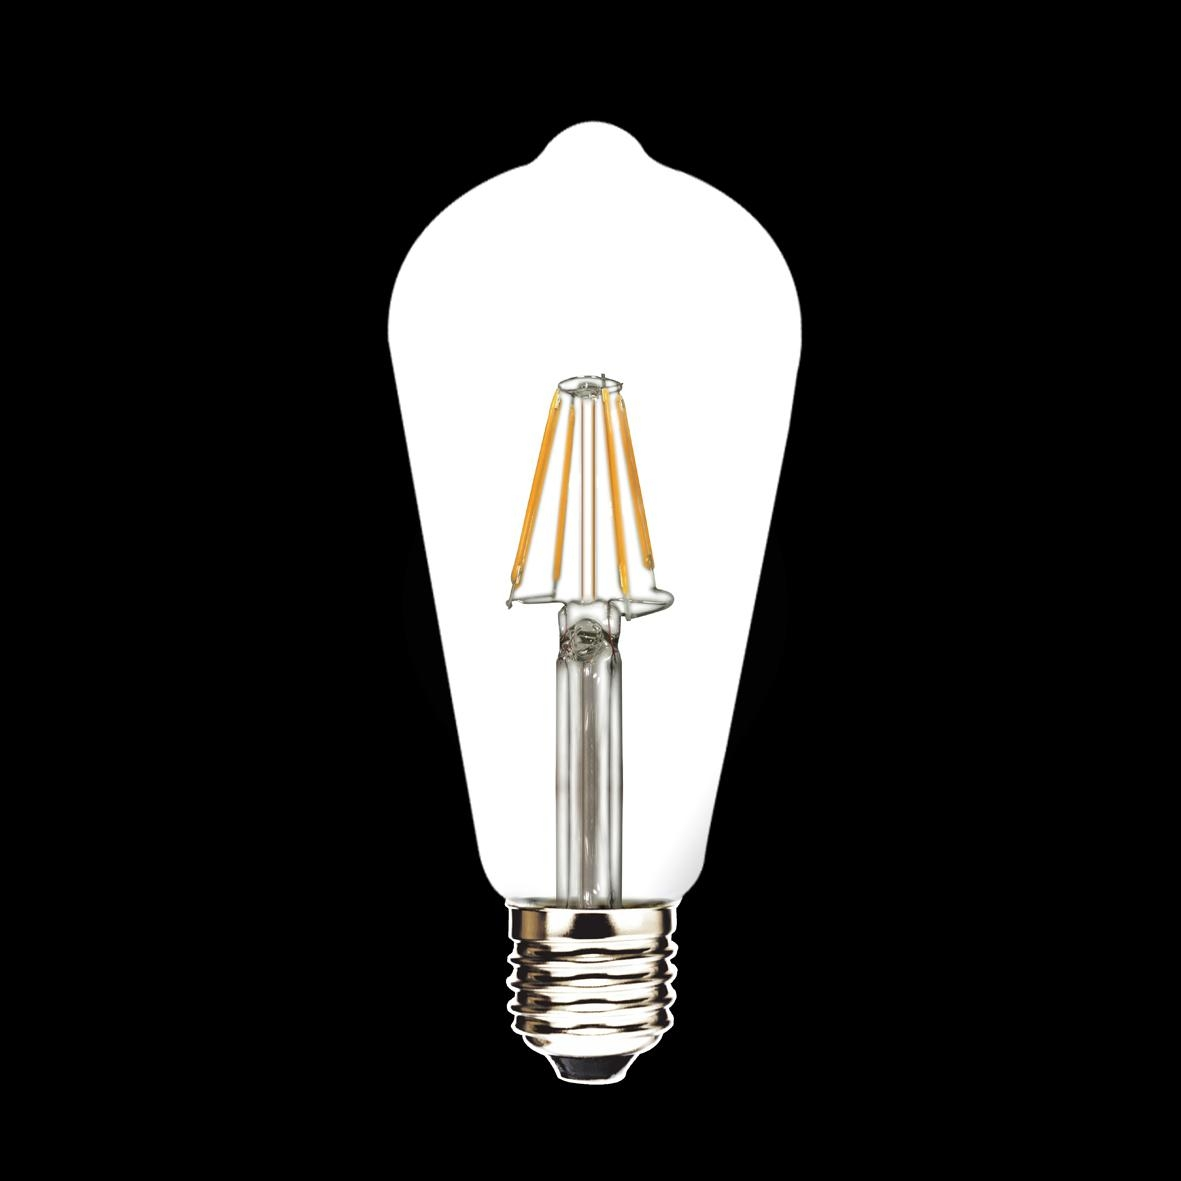 new products E27 ST64 LED Filament Bulbs 2